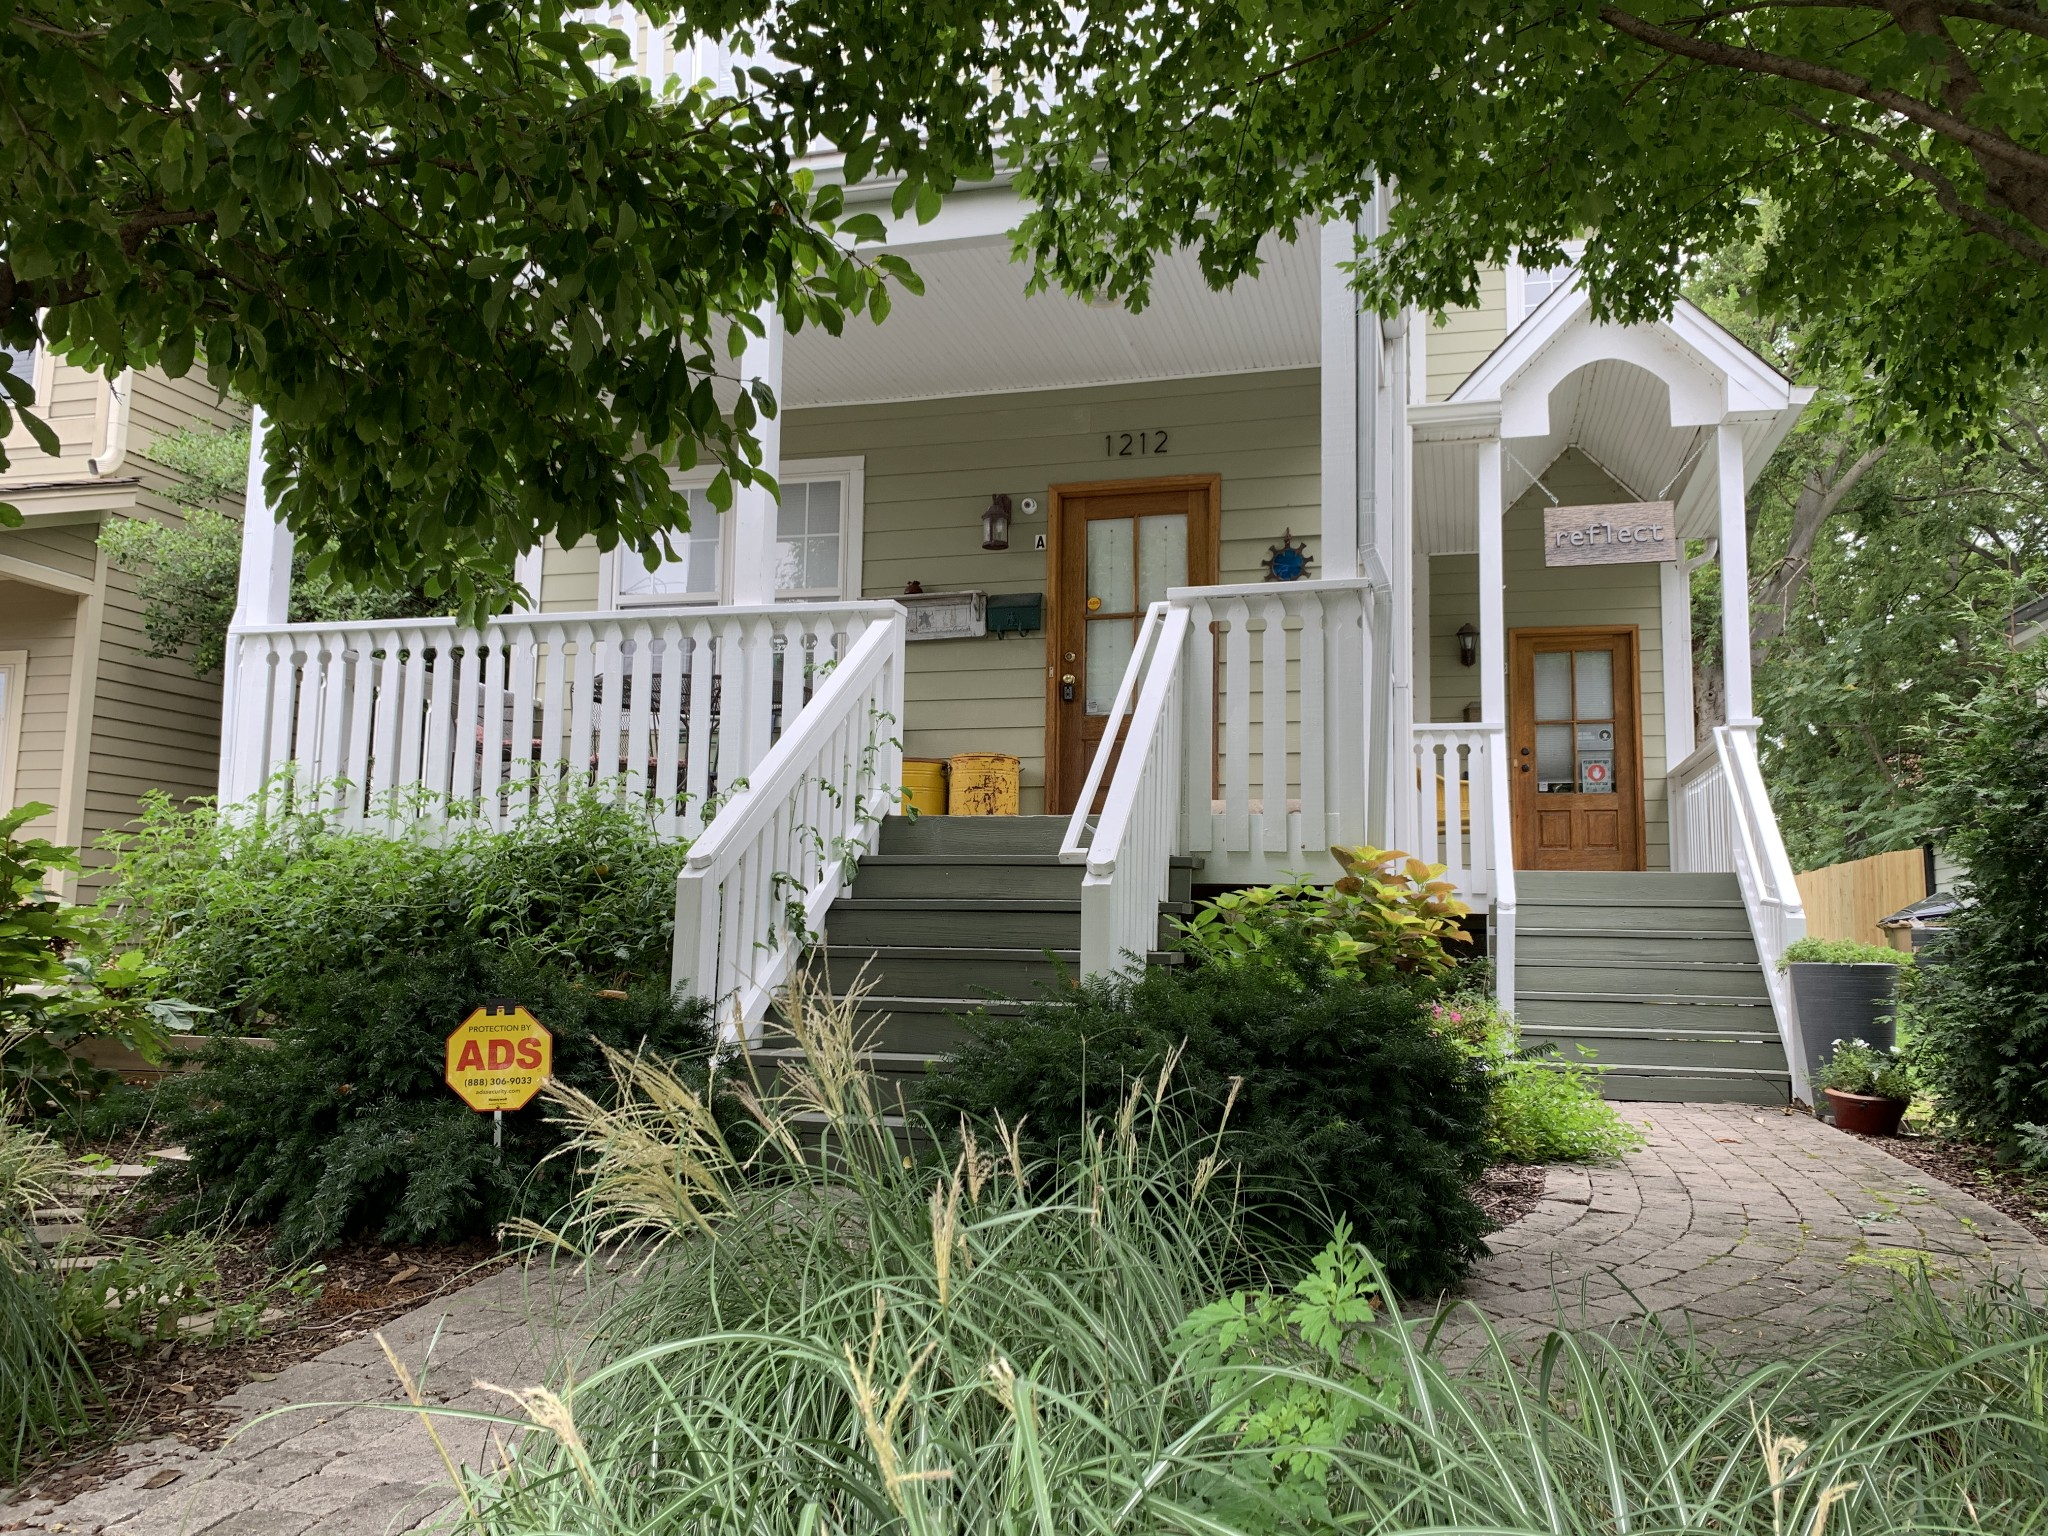 1212 3rd Ave, S Property Photo - Nashville, TN real estate listing